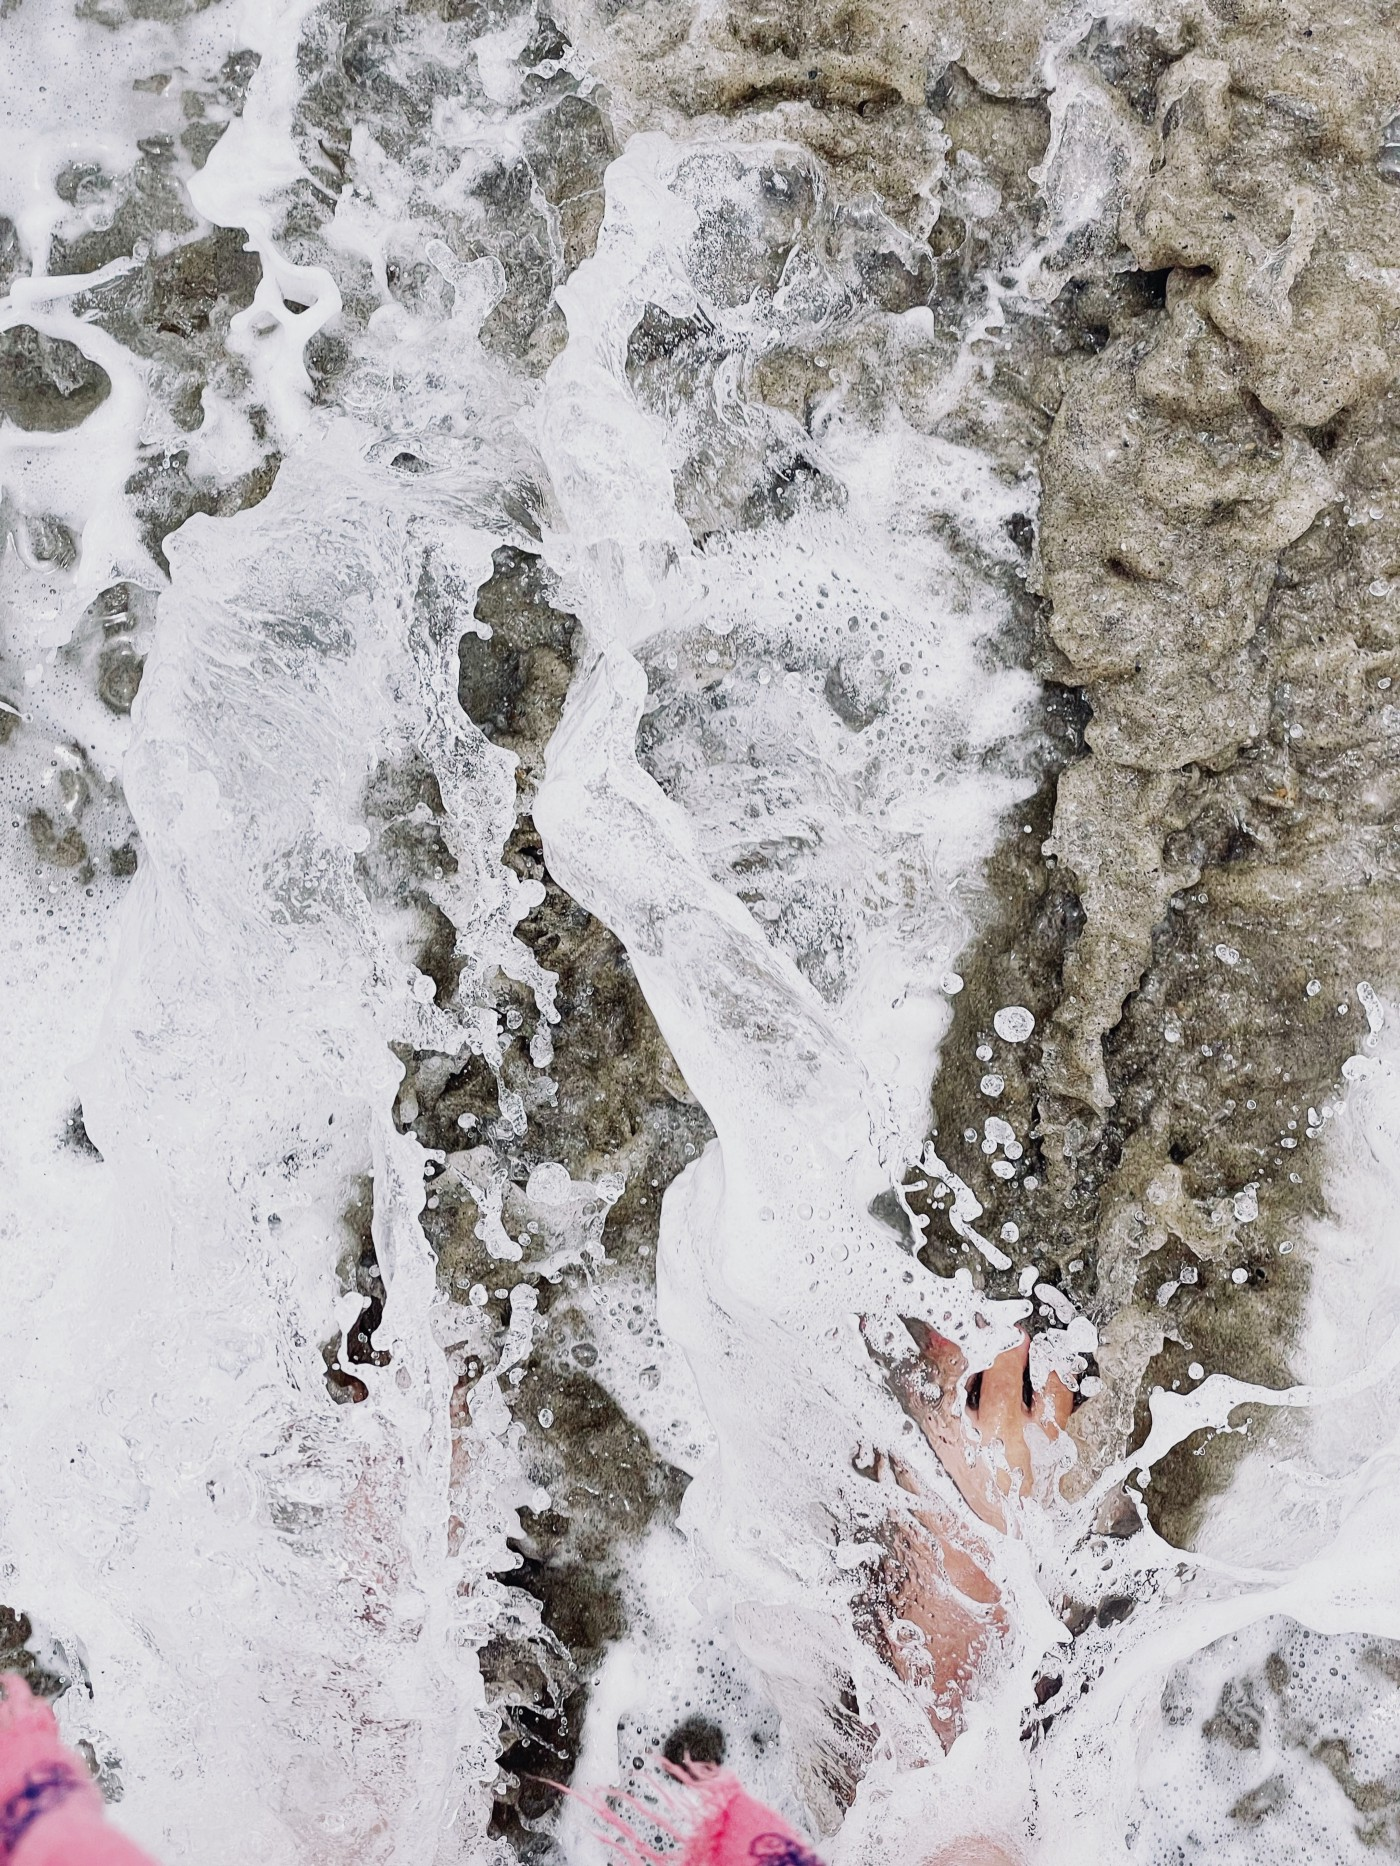 Ocean waves and beach sand crashing and foaming at the feet of a woman